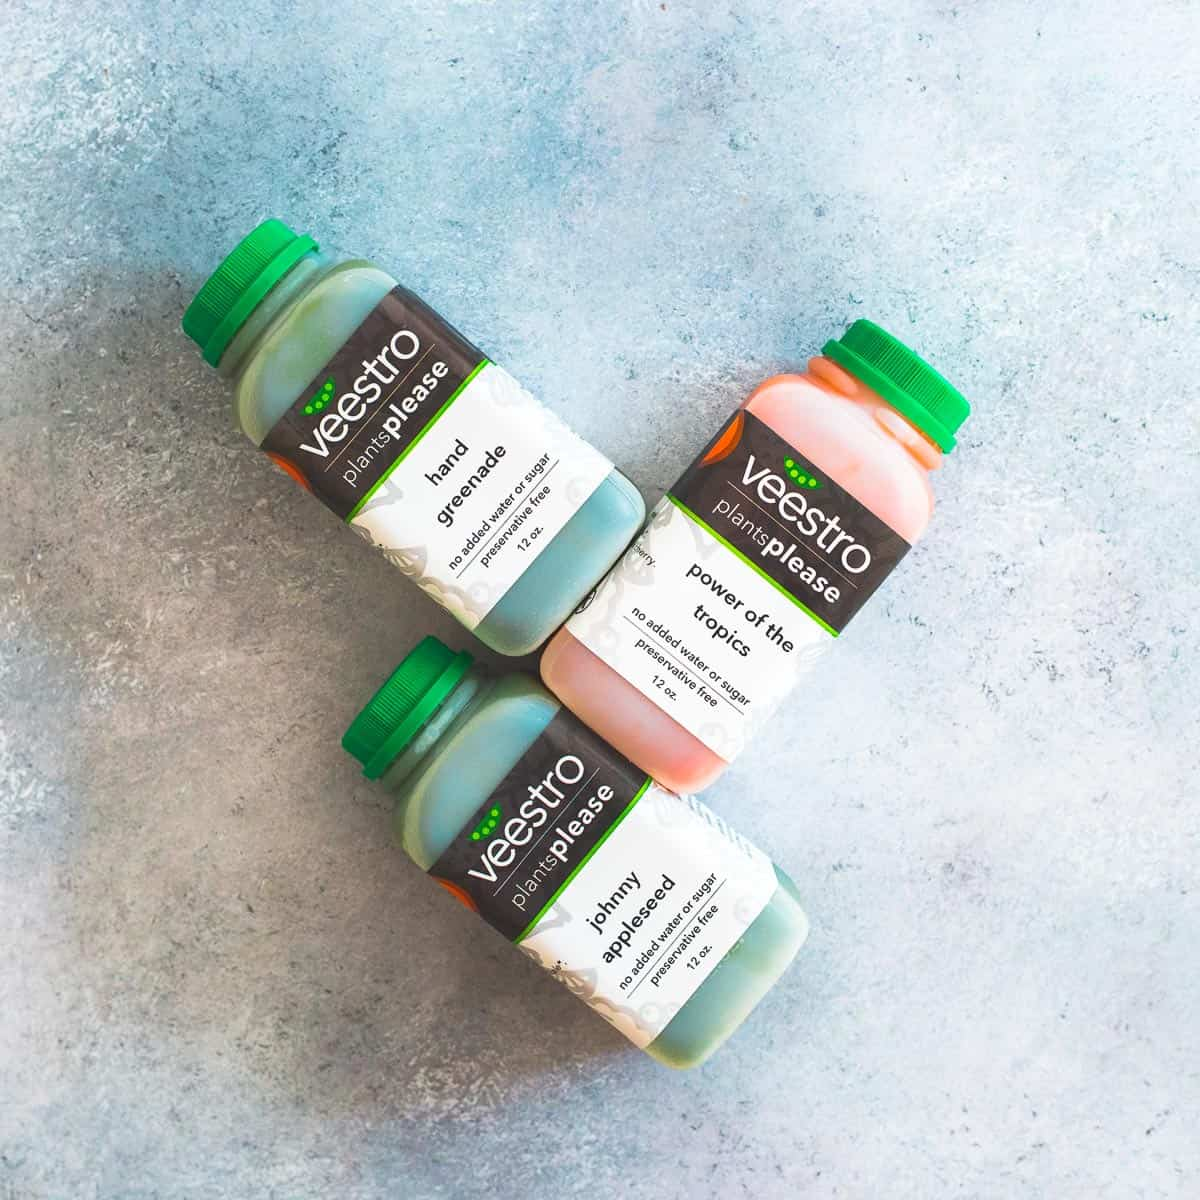 Veestro juices are a delicious addition to any meal, especially breakfast.